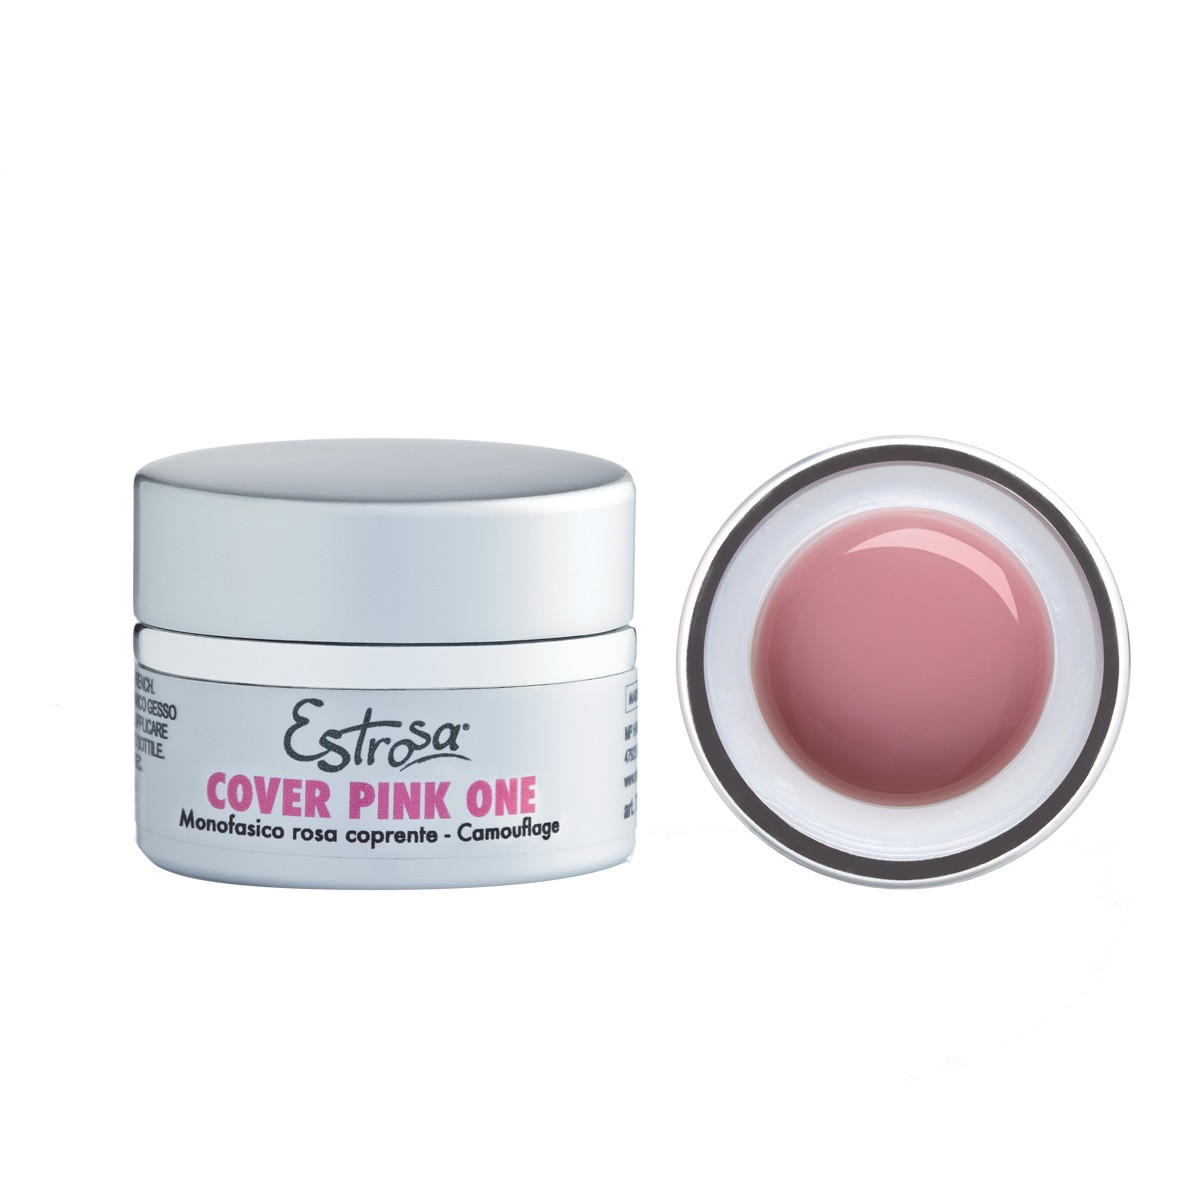 GEL CAMOUFLAGE COVER PINK ONE - ROSA COPRENTE 15 ML